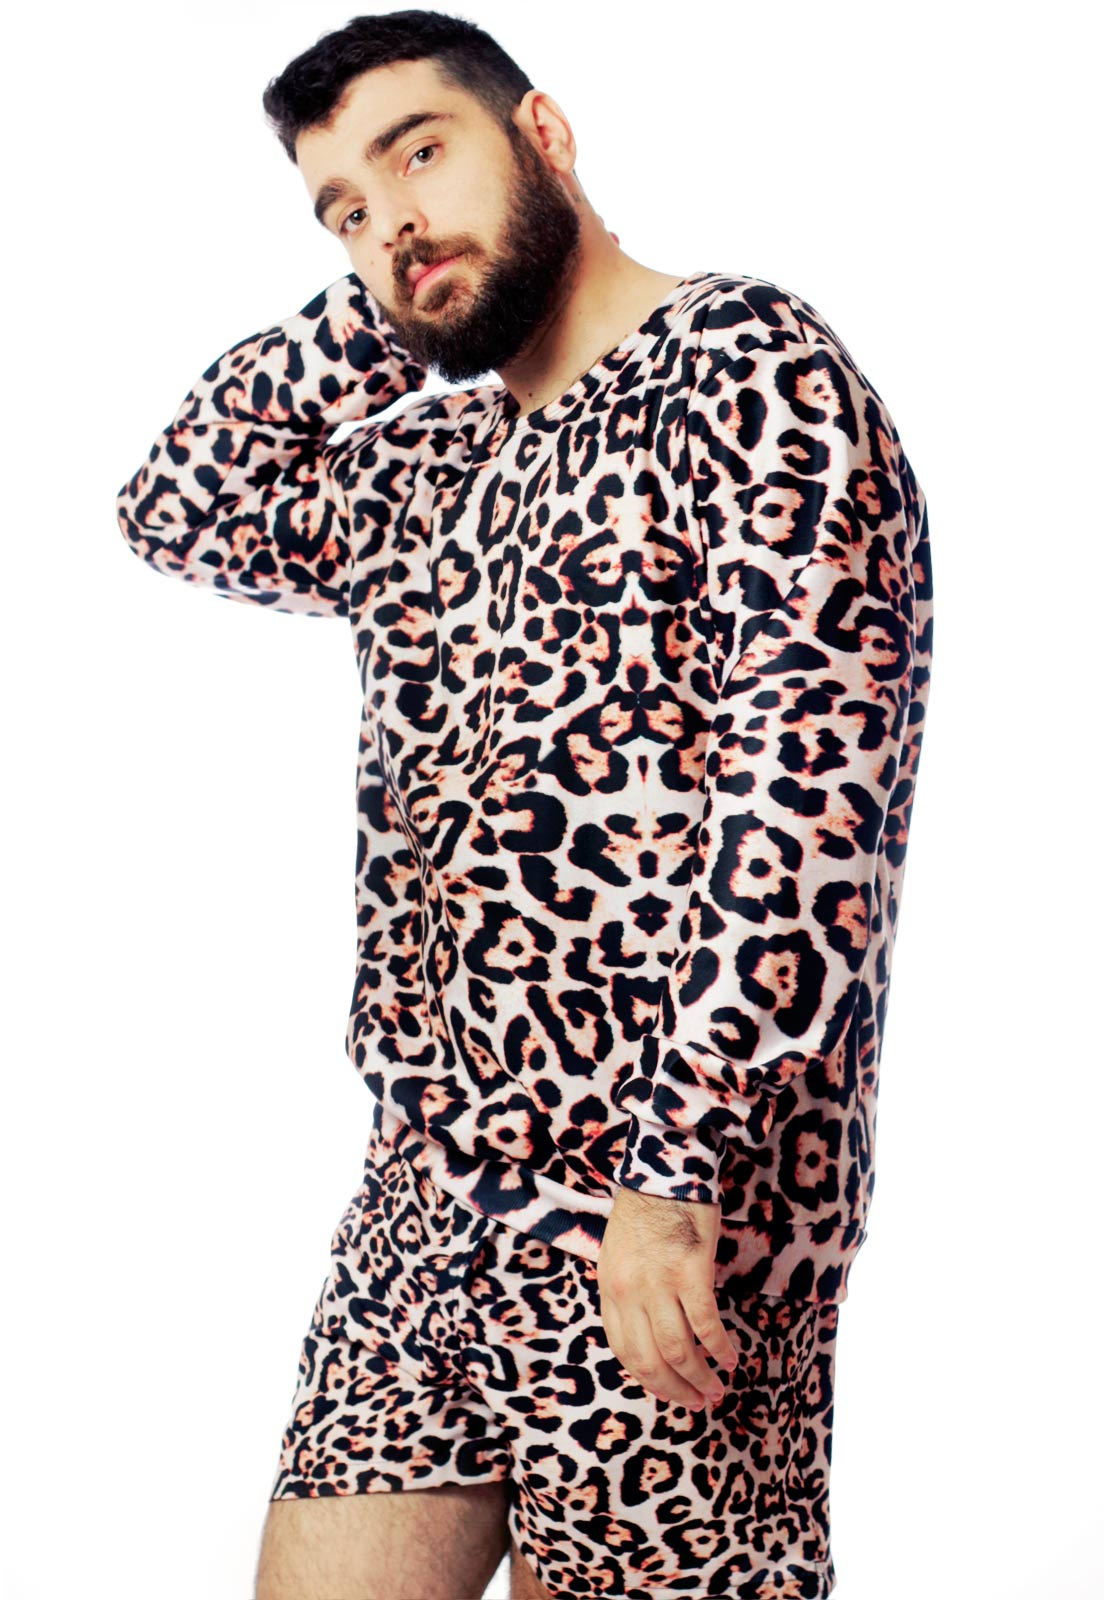 Blusa Moletom Estampado Full Print Unissex Animal Print Guepardo